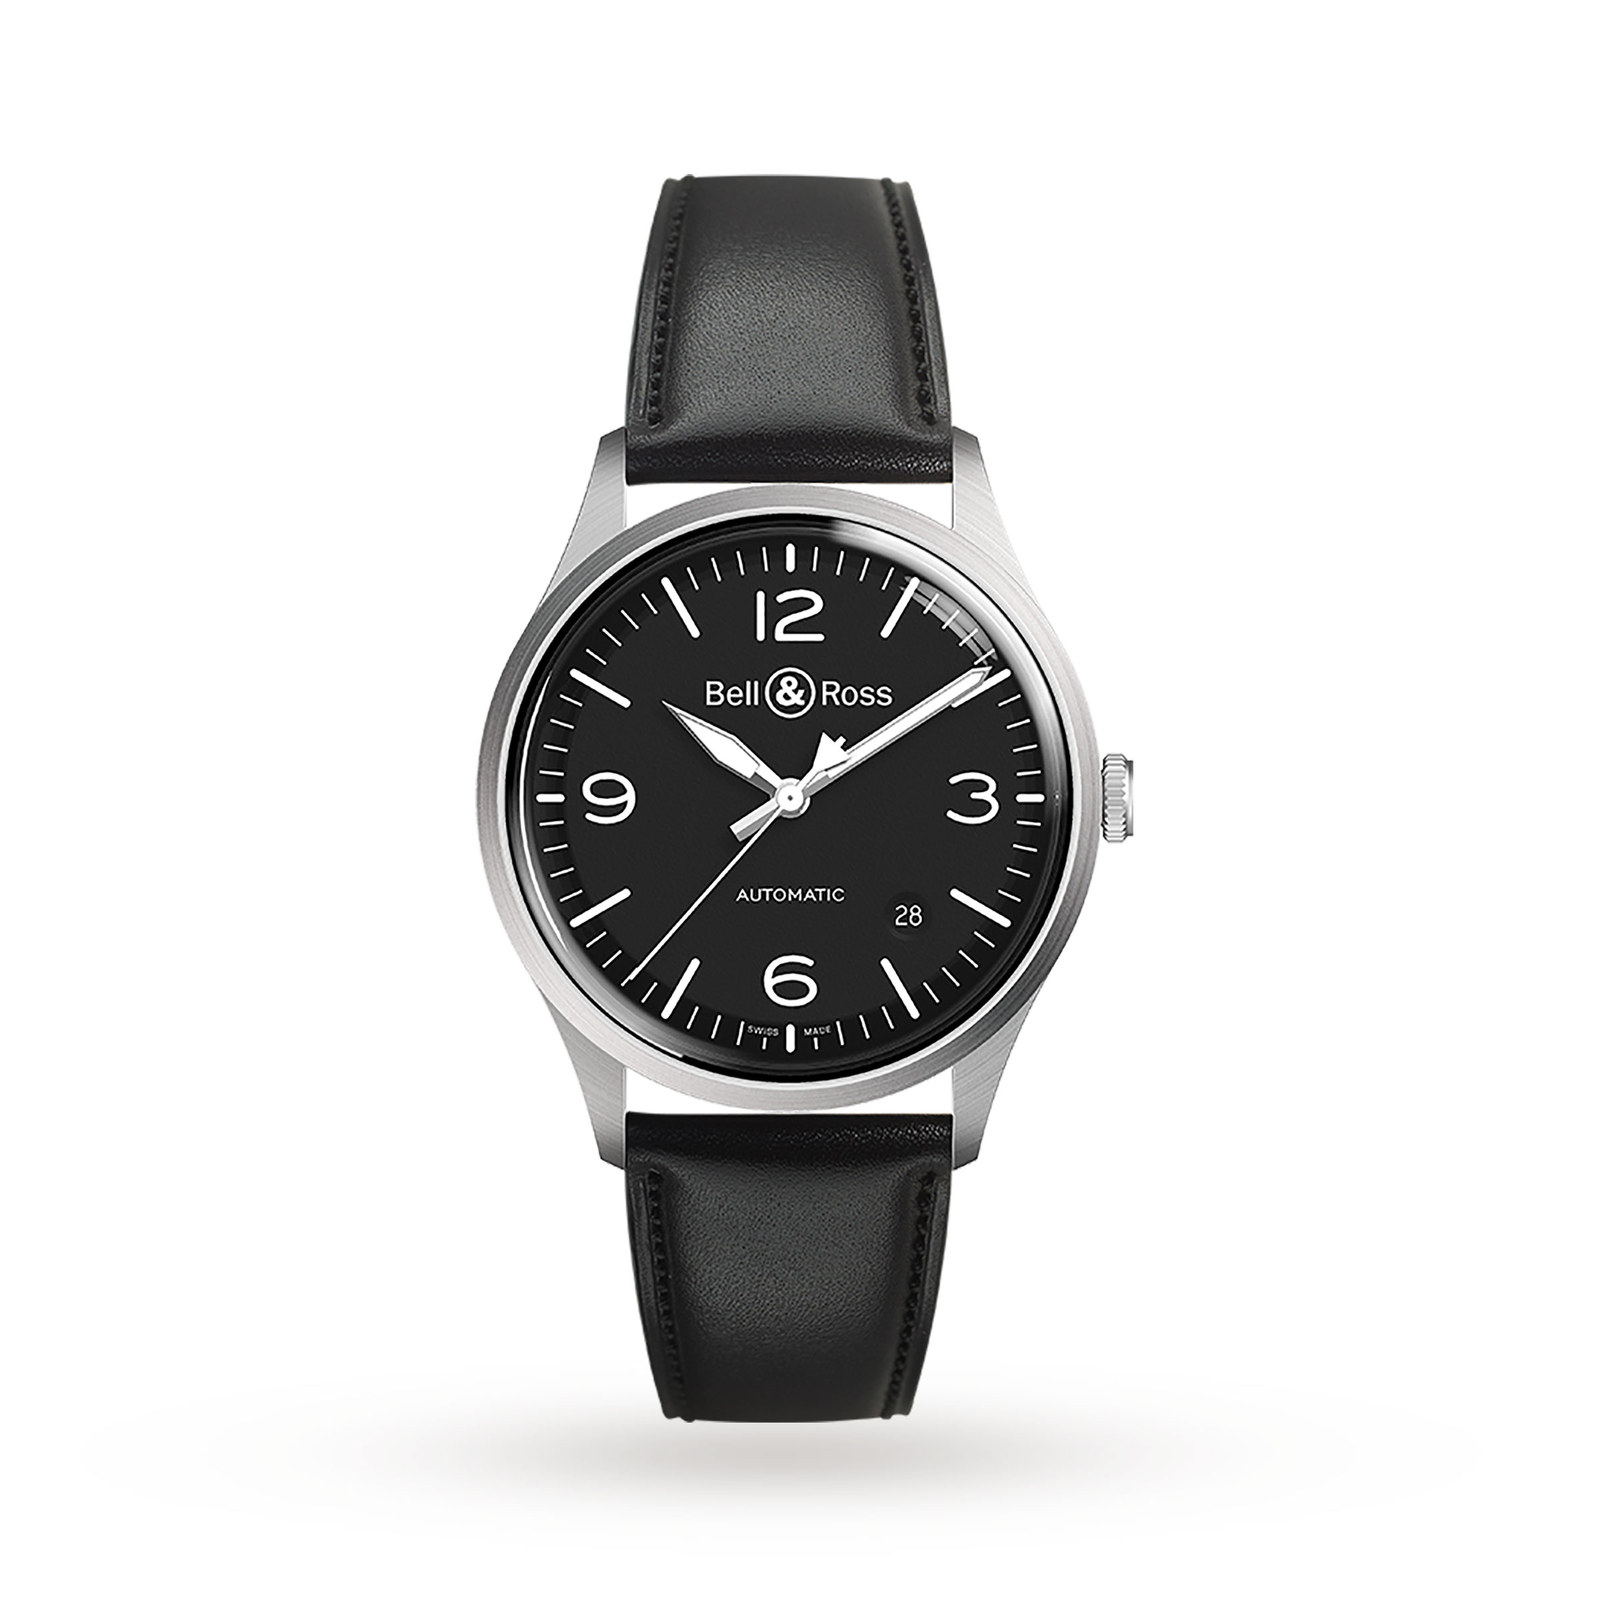 Bell & Ross Black Steel Vintage Watch